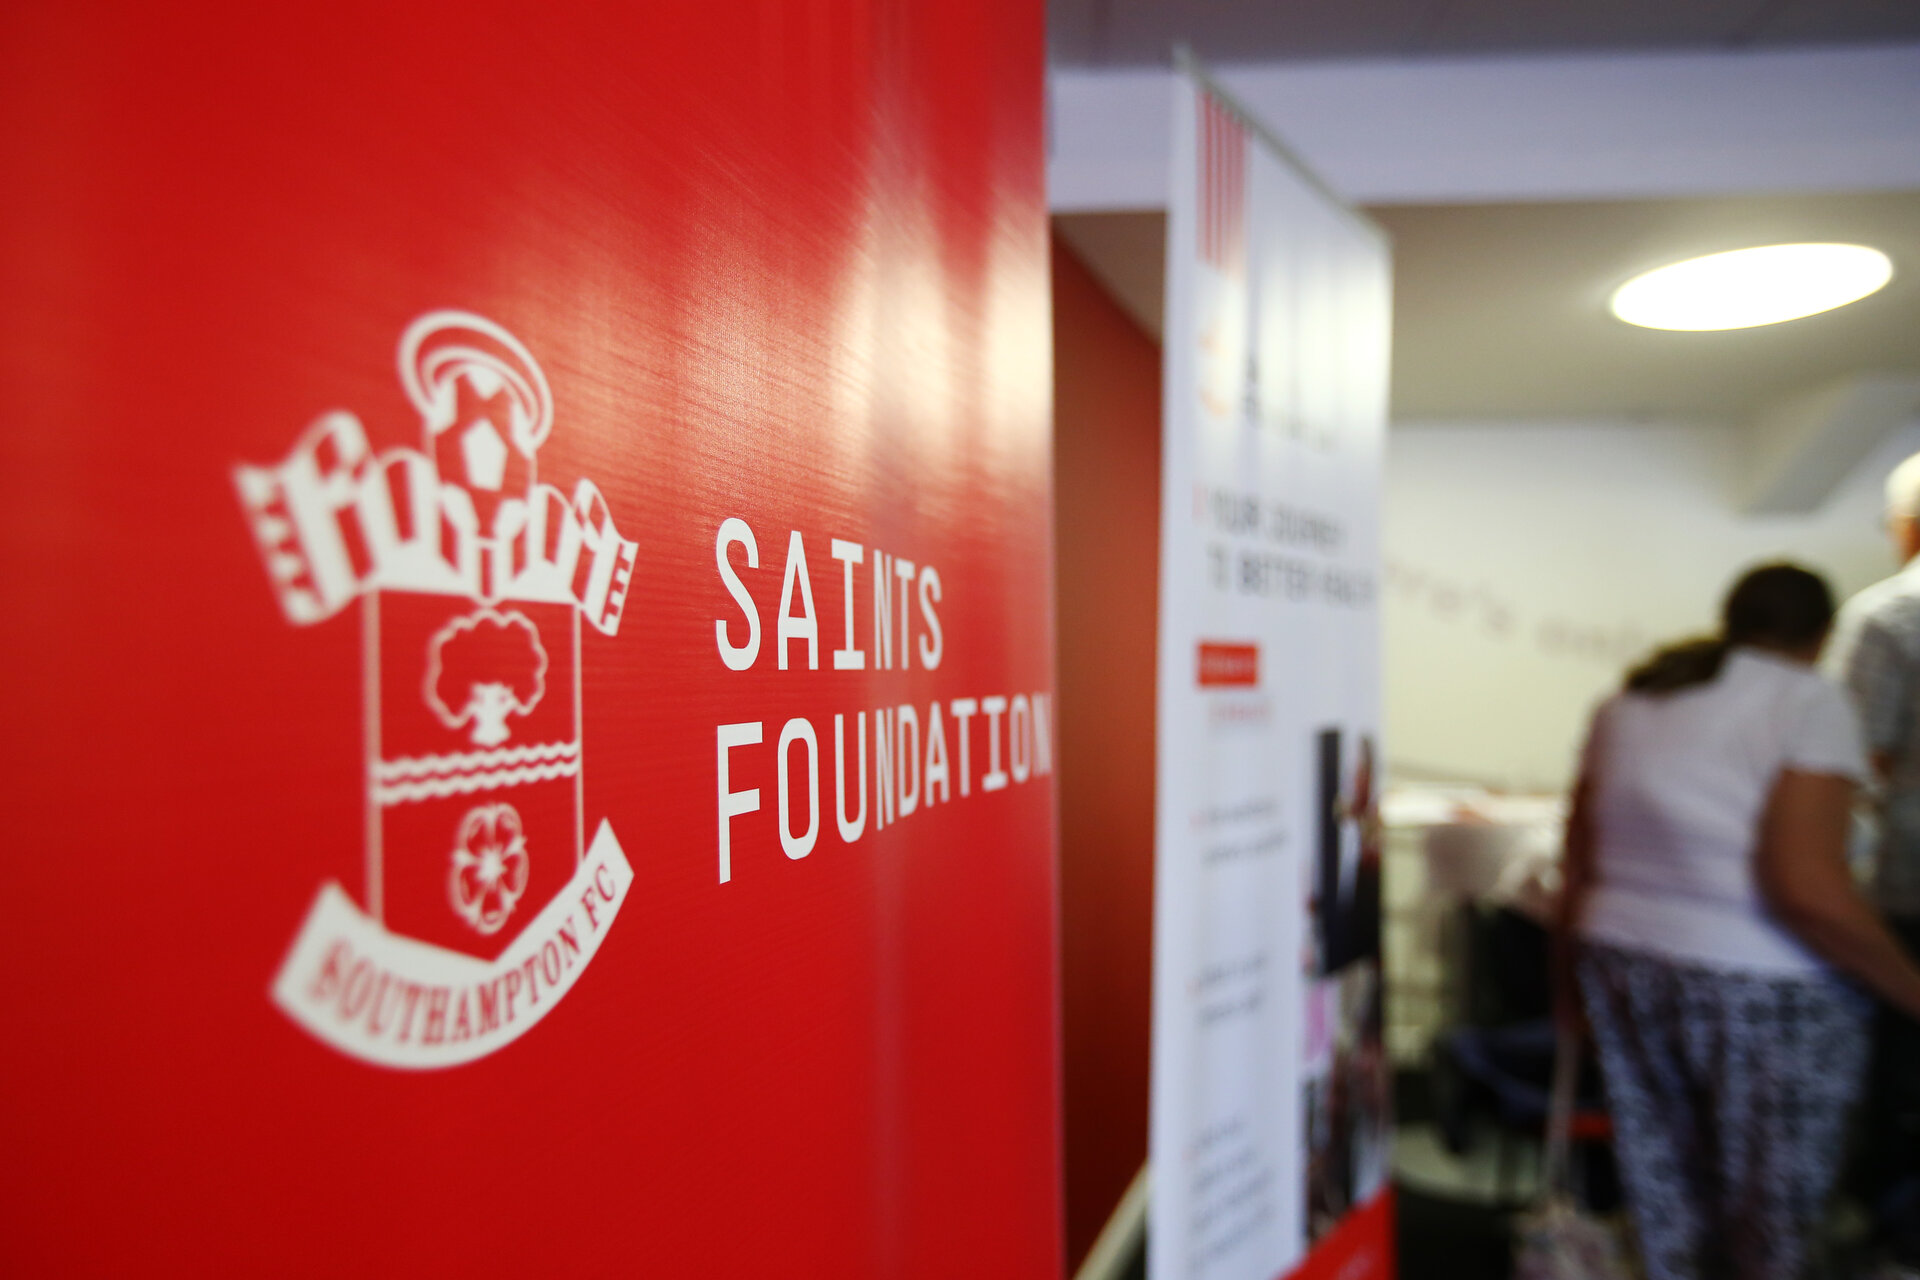 SOUTHAMPTON, ENGLAND - JULY 04:  during the Saints Foundation Charity event helping the aged to maintain their freedom pictured at St Mary's Stadium on July 4, 2019 in Southampton, England. (Photo by James Bridle - Southampton FC/Southampton FC via Getty Images)